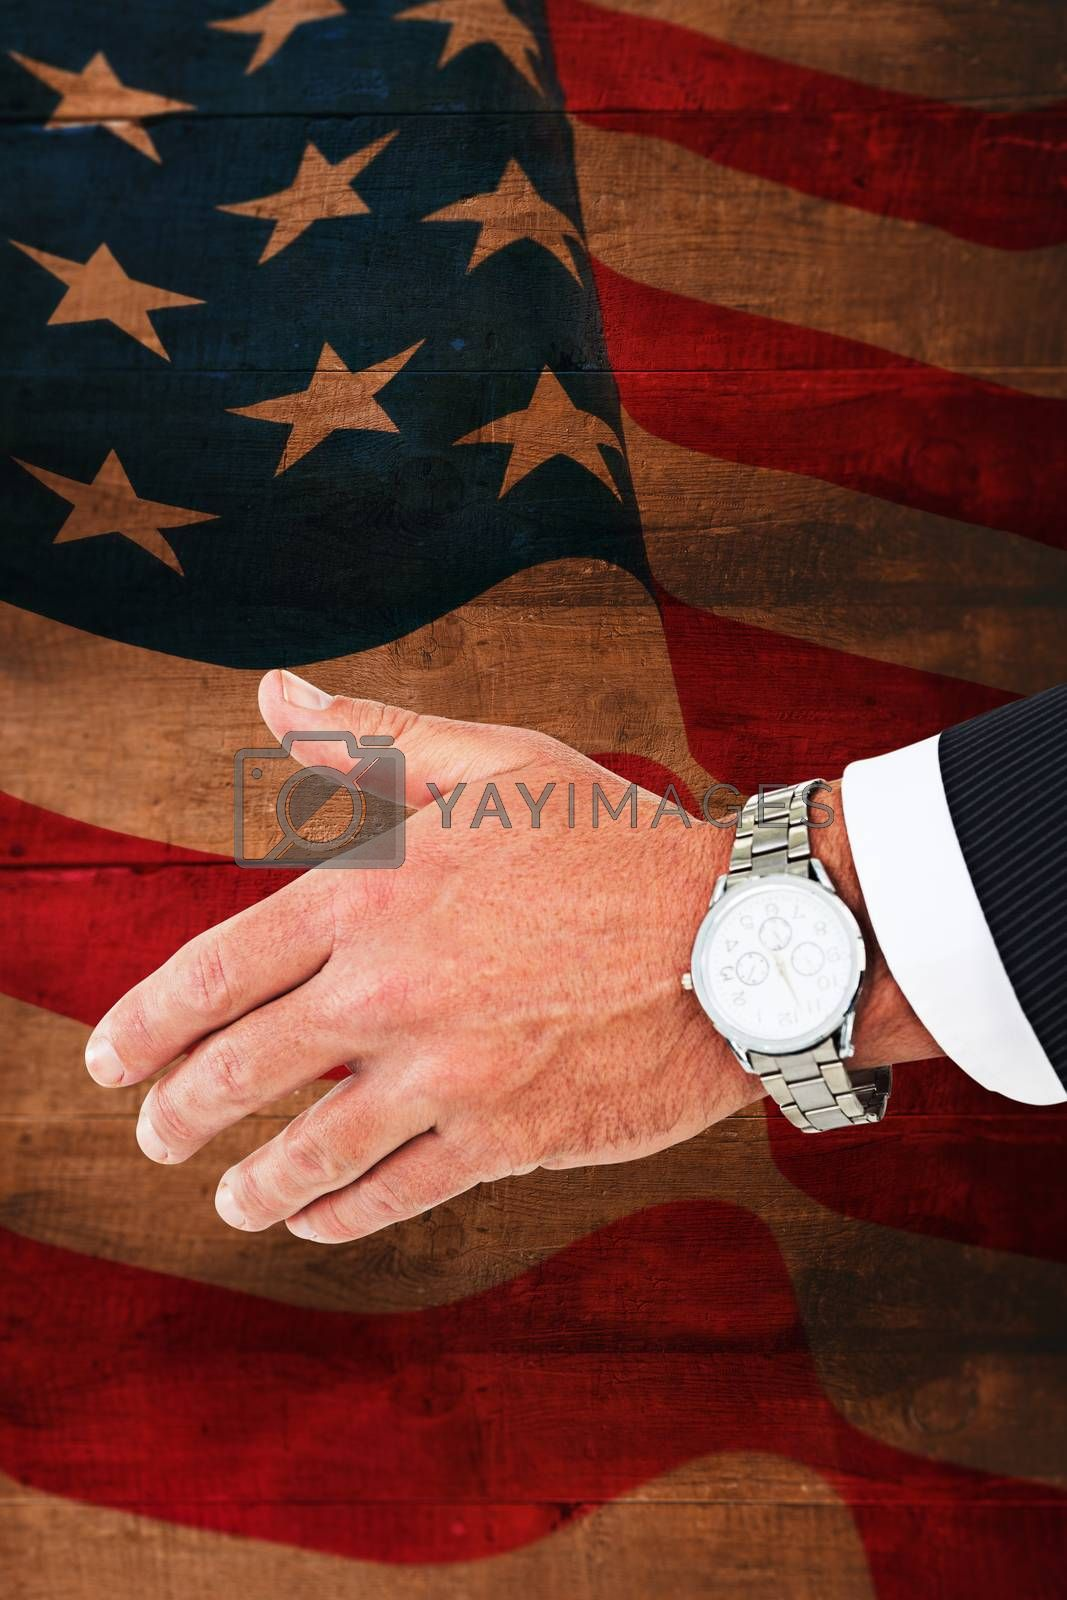 Businessman in suit clenching fists against weathered oak floor boards background